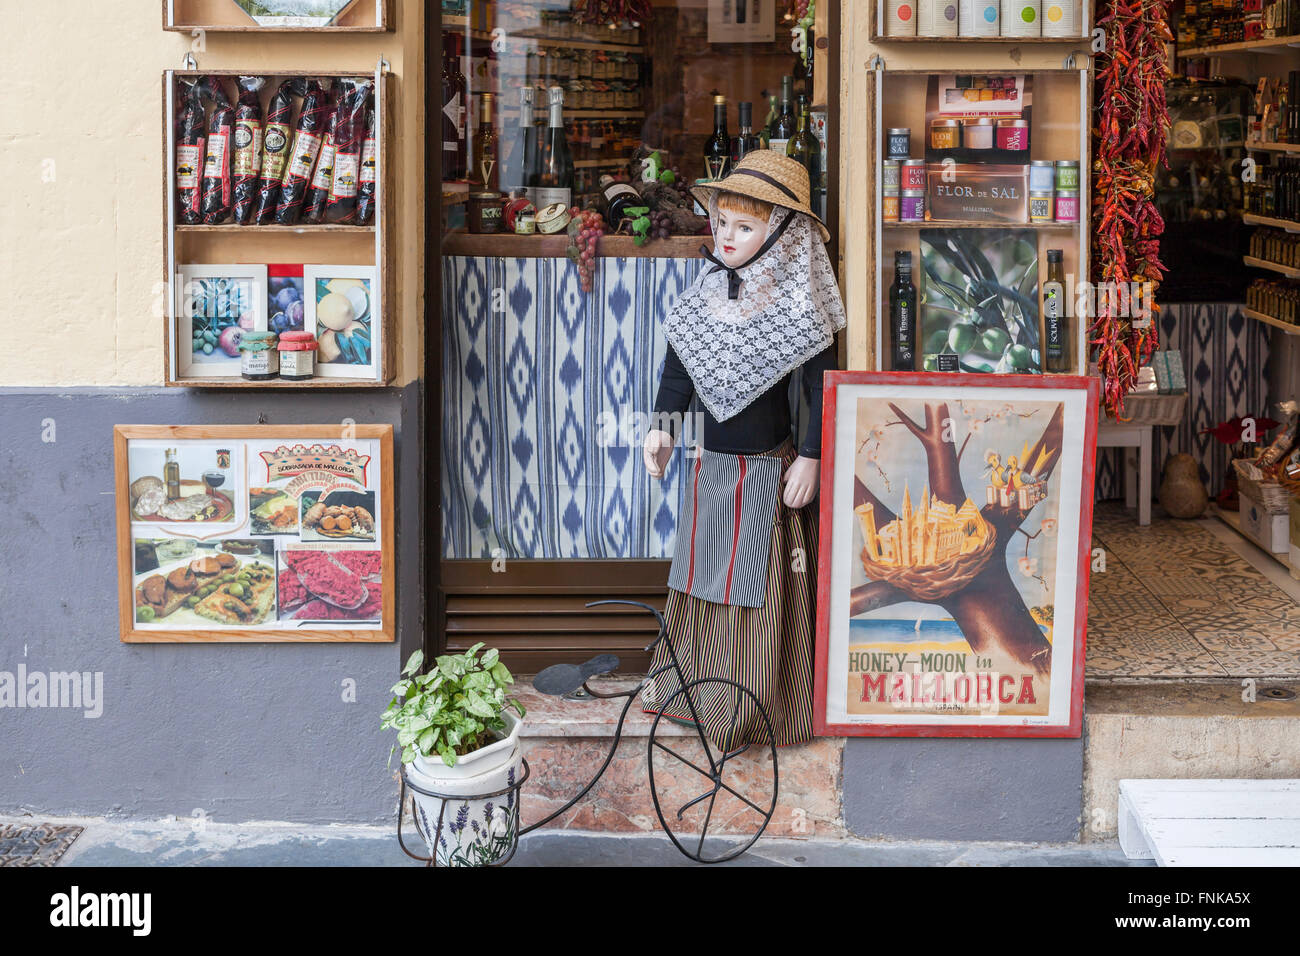 Shop with typical products of Palma de Mallorca, Balearic Islands, Spain. Stock Photo